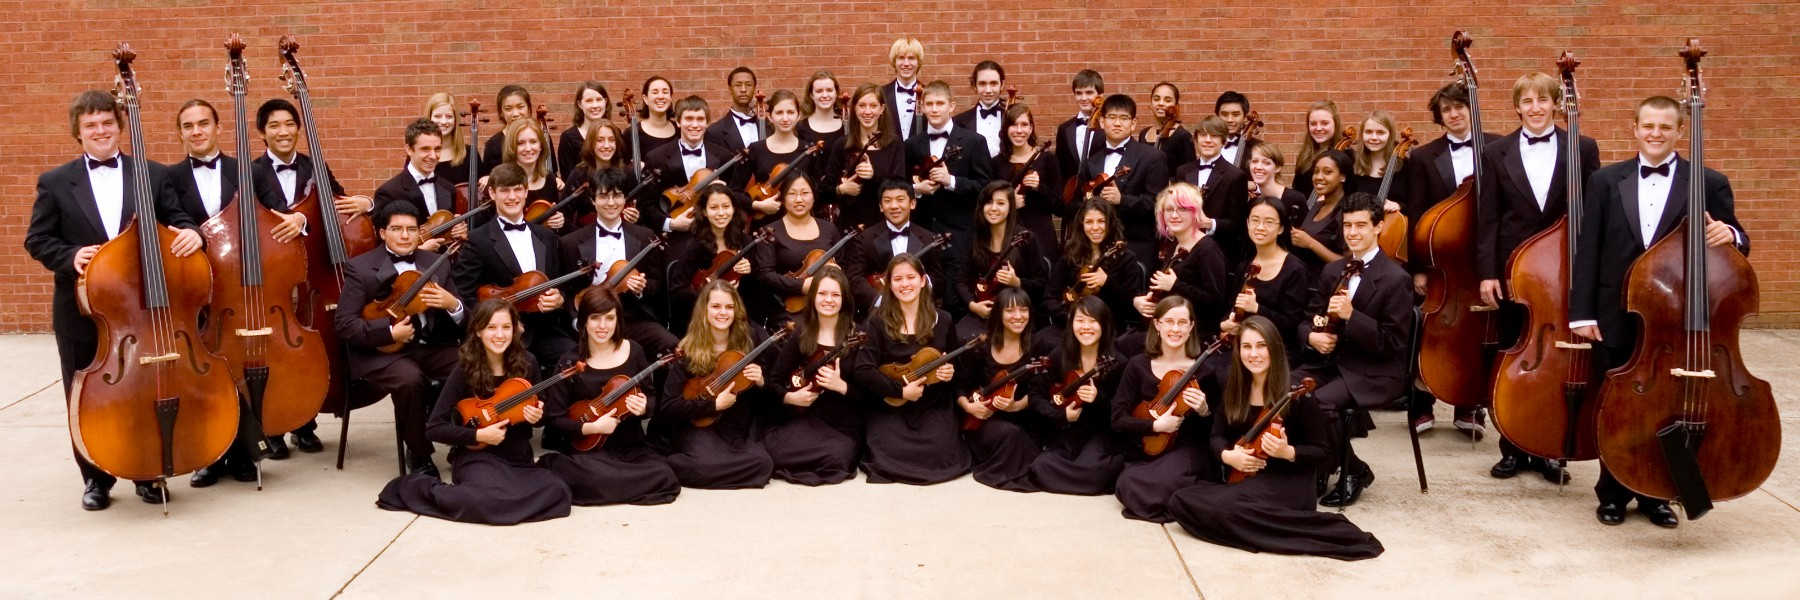 2008 Chamber Orchestra